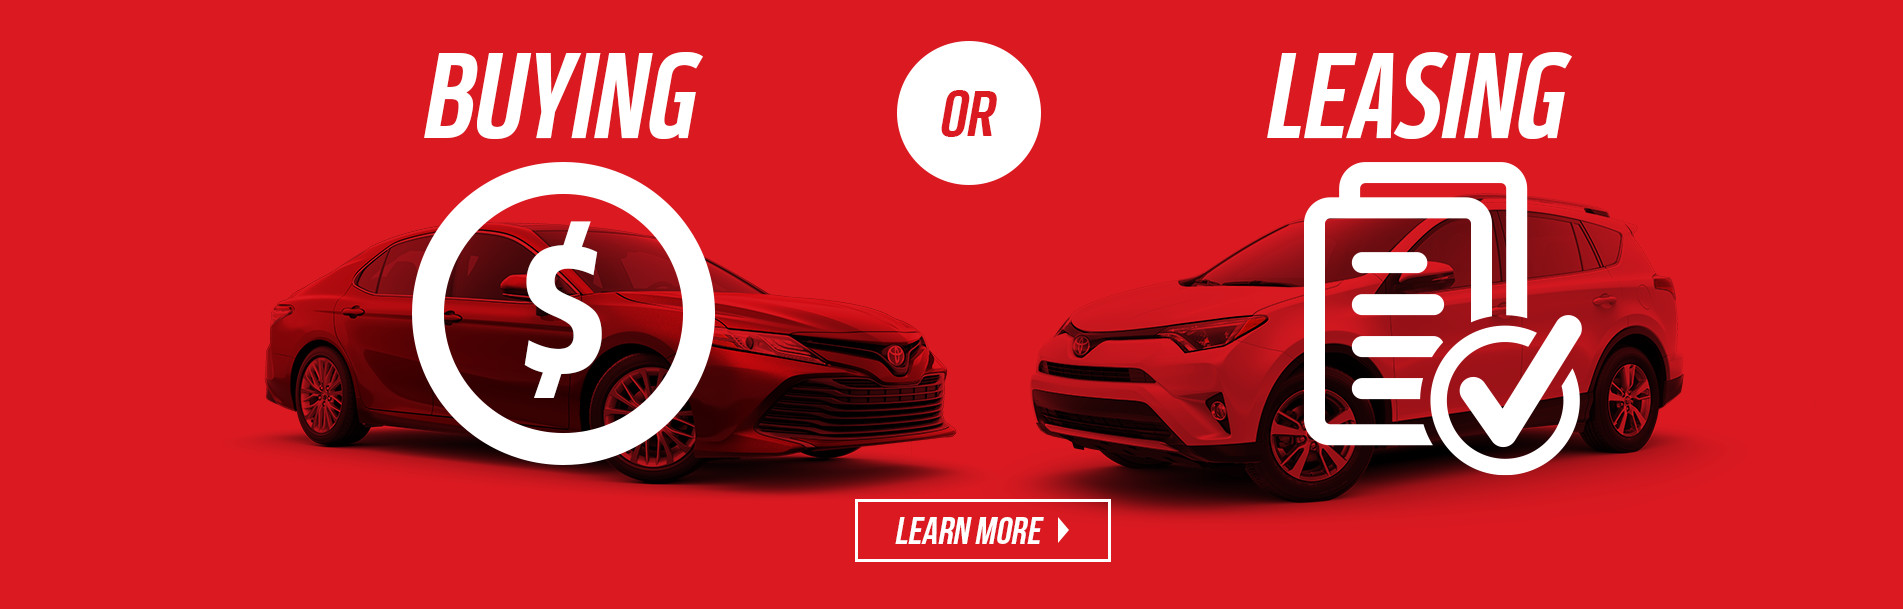 Lease Or Buy Deery Brothers Toyota